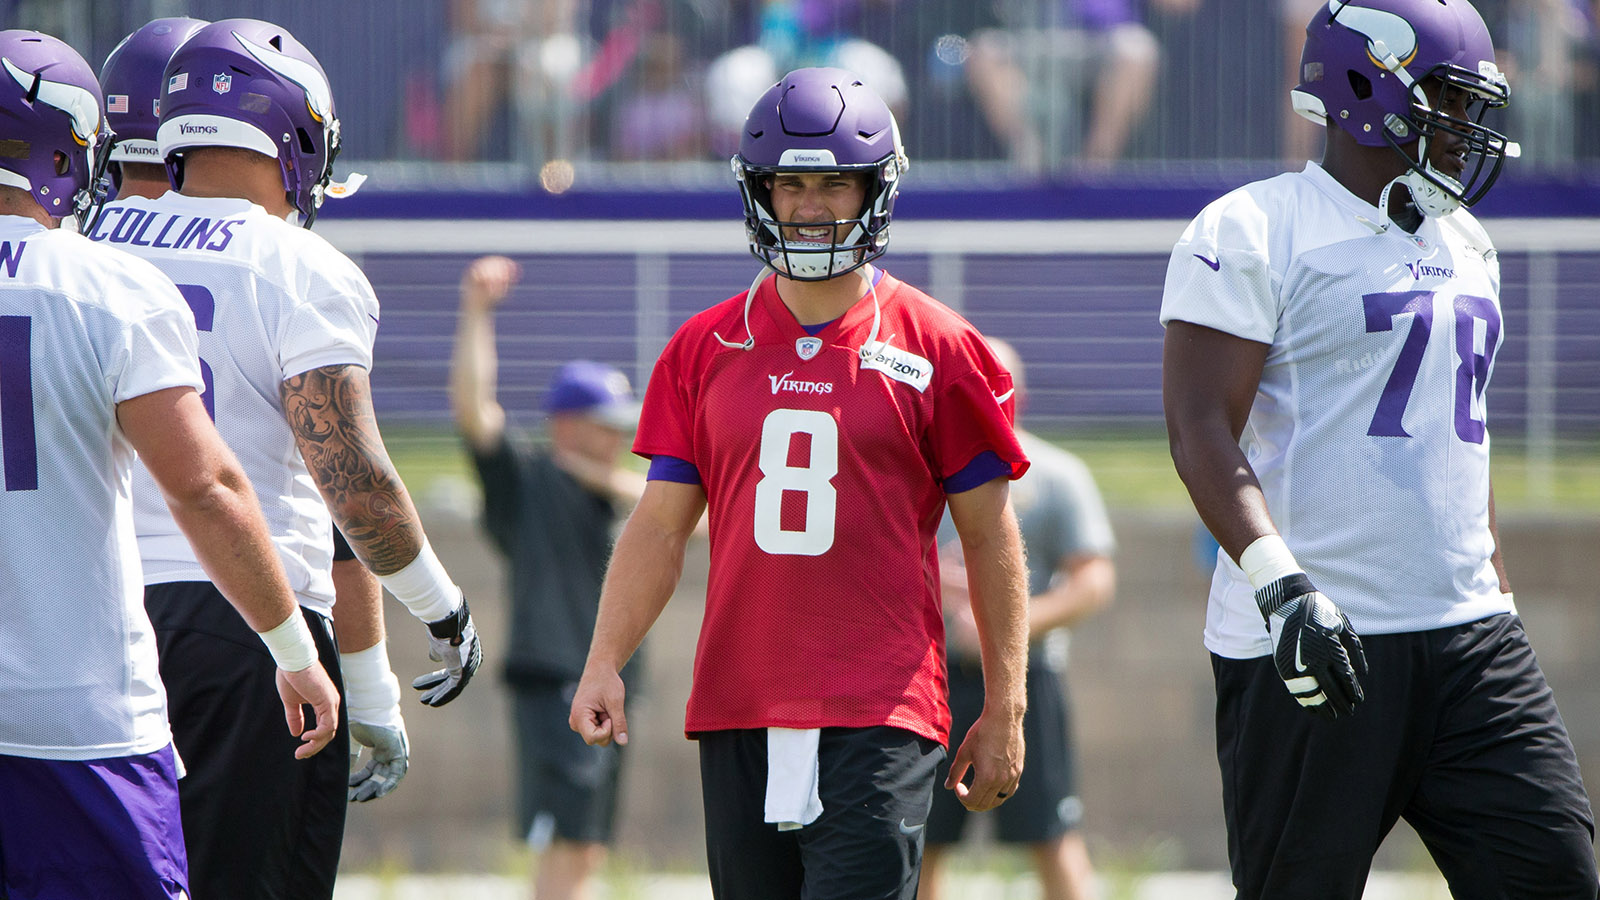 Jul 28, 2018; Eagan, MN, USA; Minnesota Vikings quarterback Kirk Cousins (8) at Vikings training camp at TCO Performance Center. Mandatory Credit: Brad Rempel-USA TODAY Sports